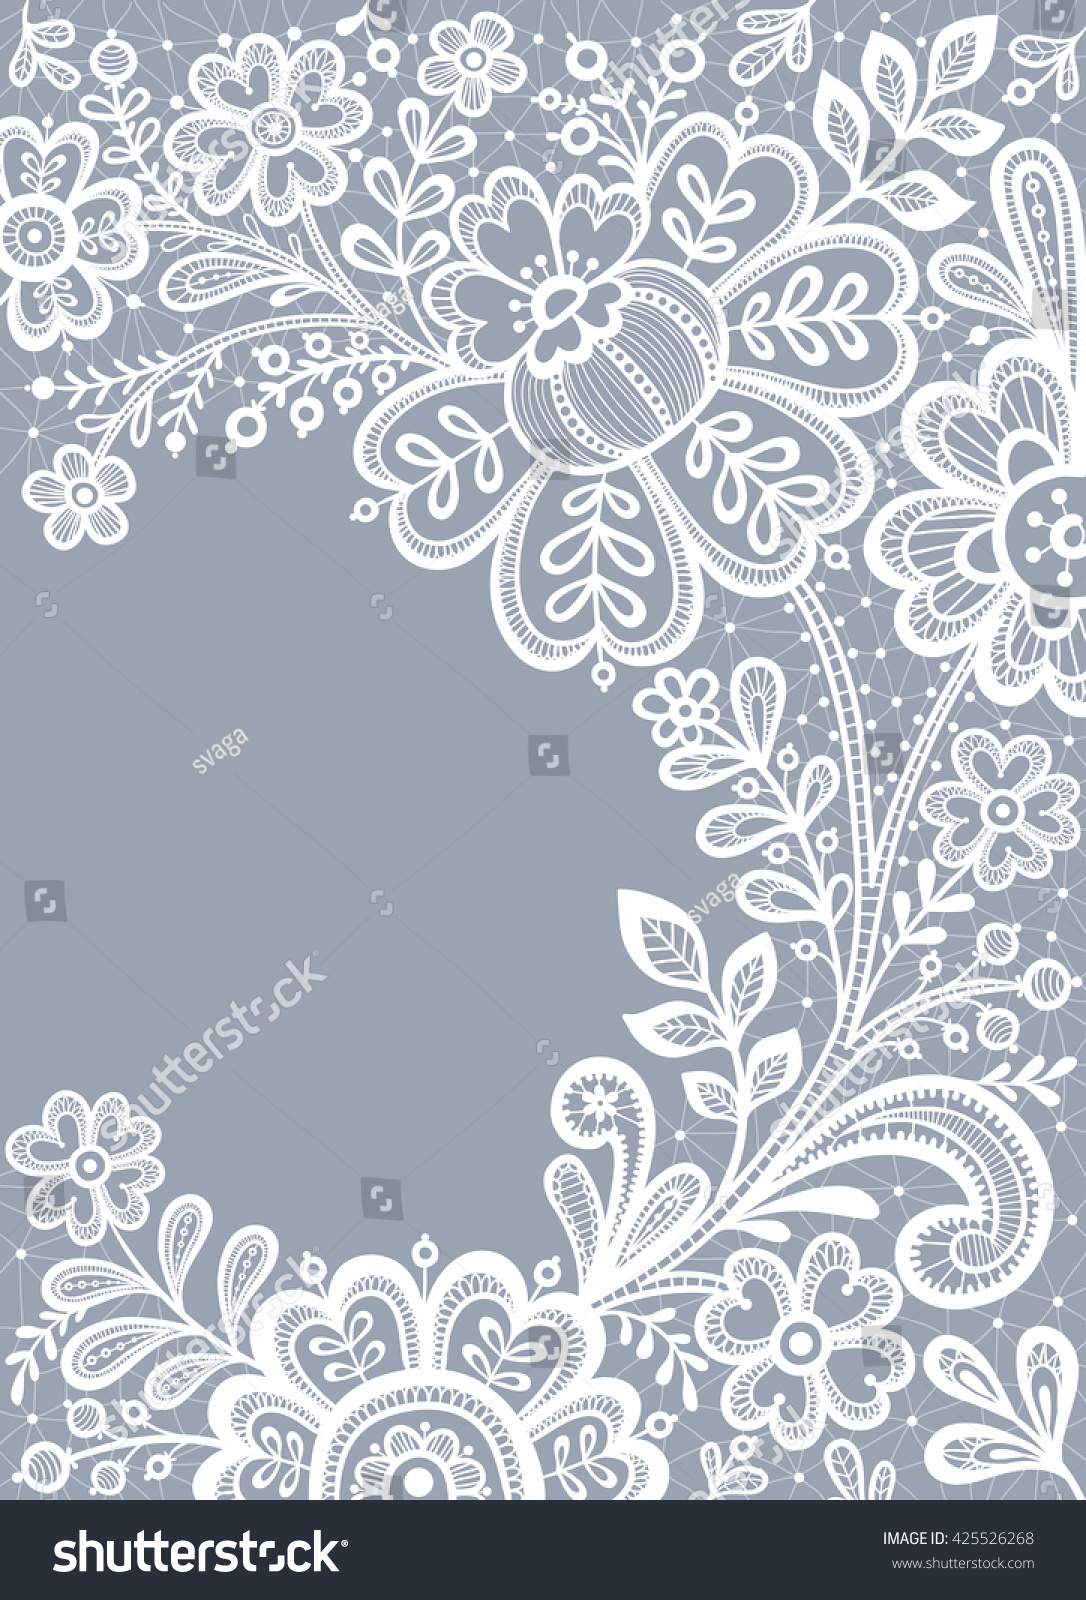 White Lace Floral Background Lace Wedding Stock Vector HD (Royalty ...